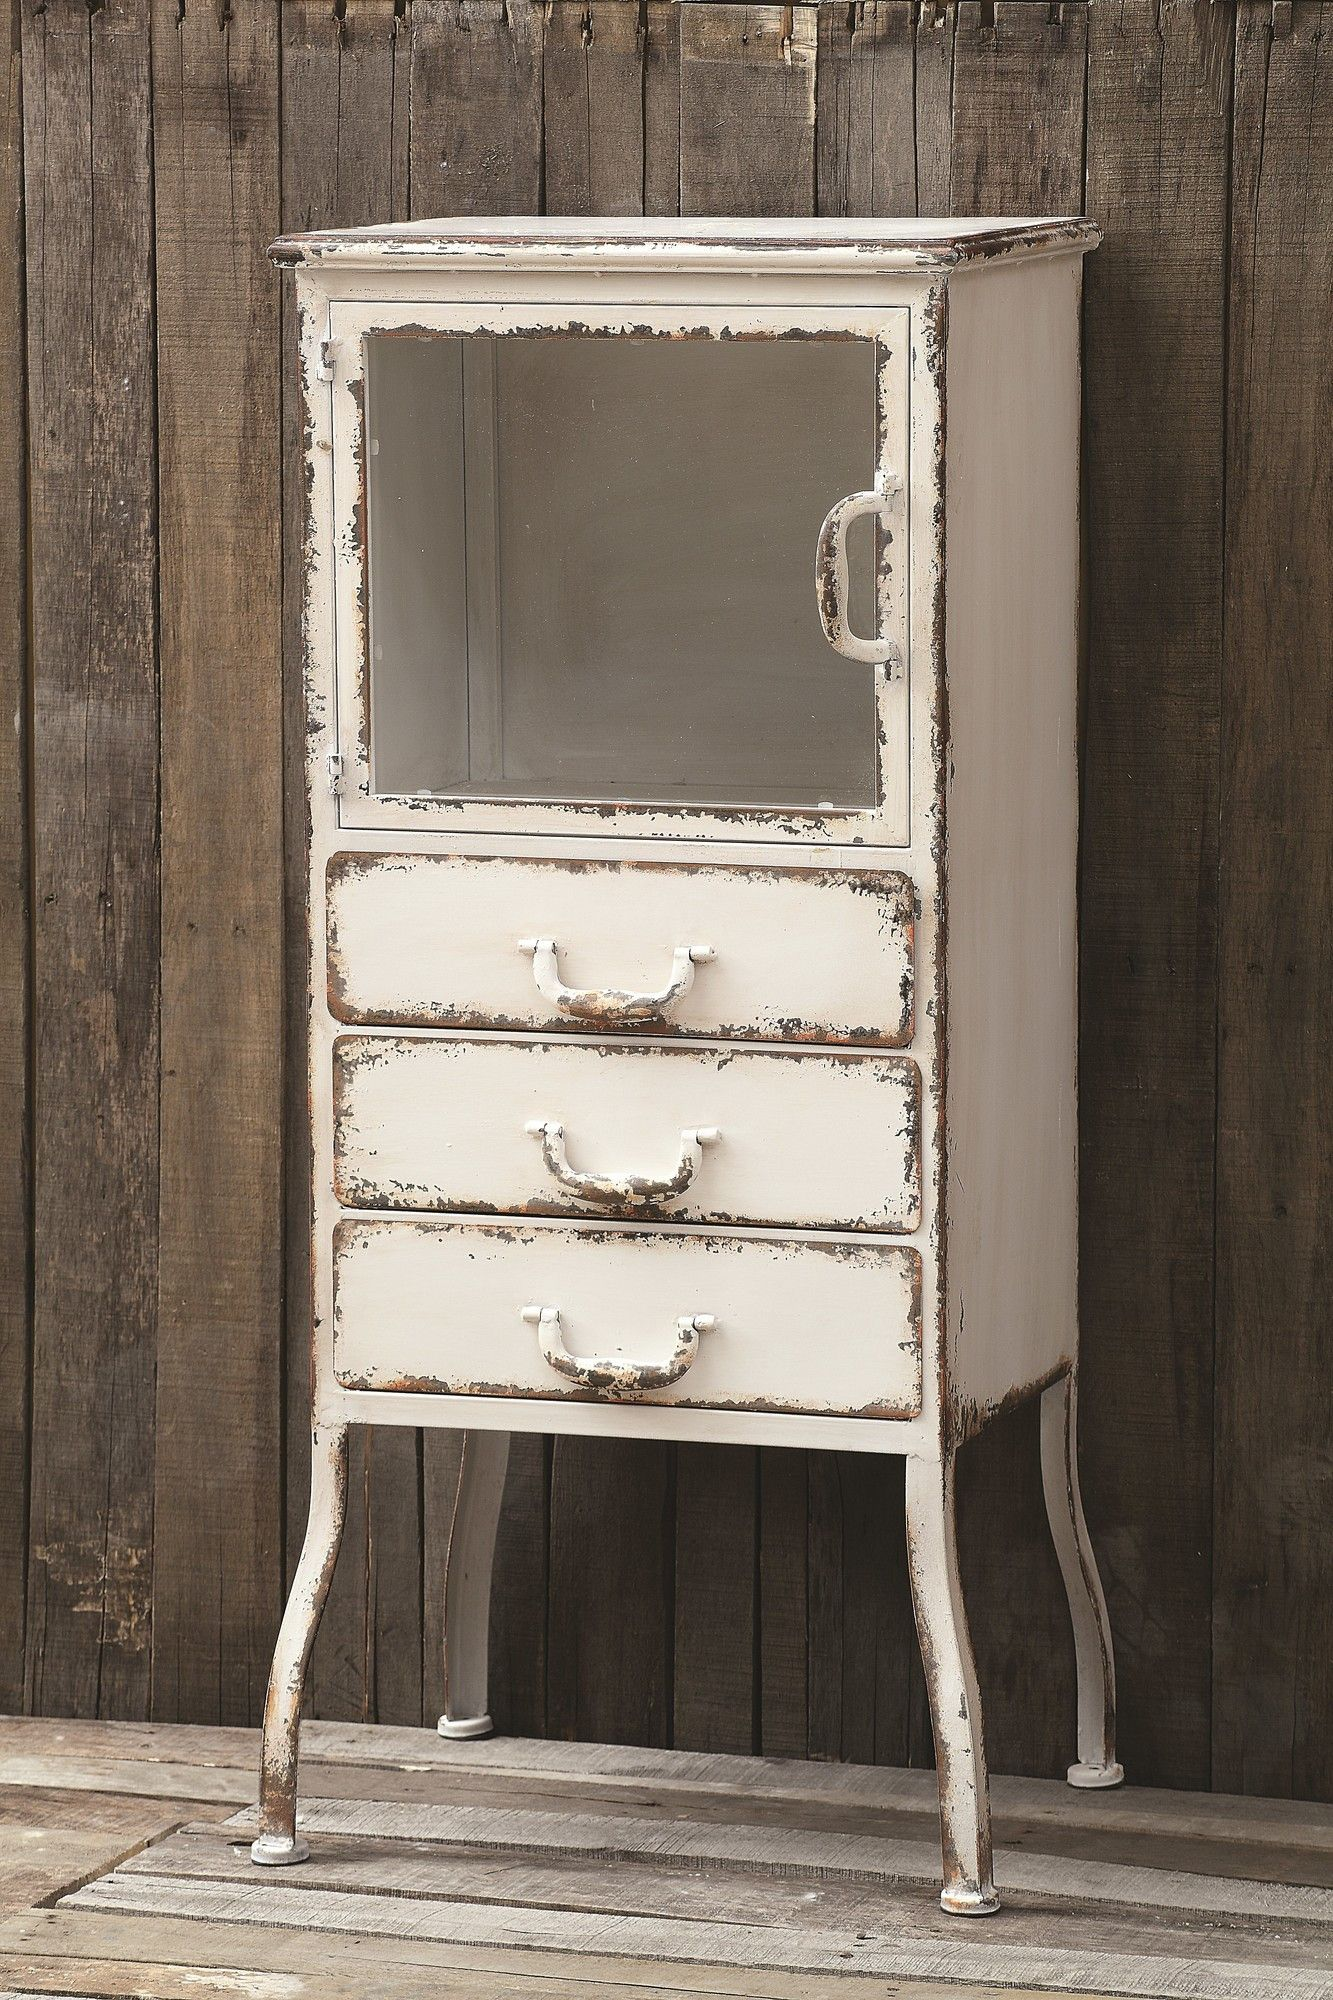 Bring Rustic Elegance To Your Dining Room Or Master Suite With This Elegant Metal Cabinet Showcasing 3 Drawers And A Distressed Finish